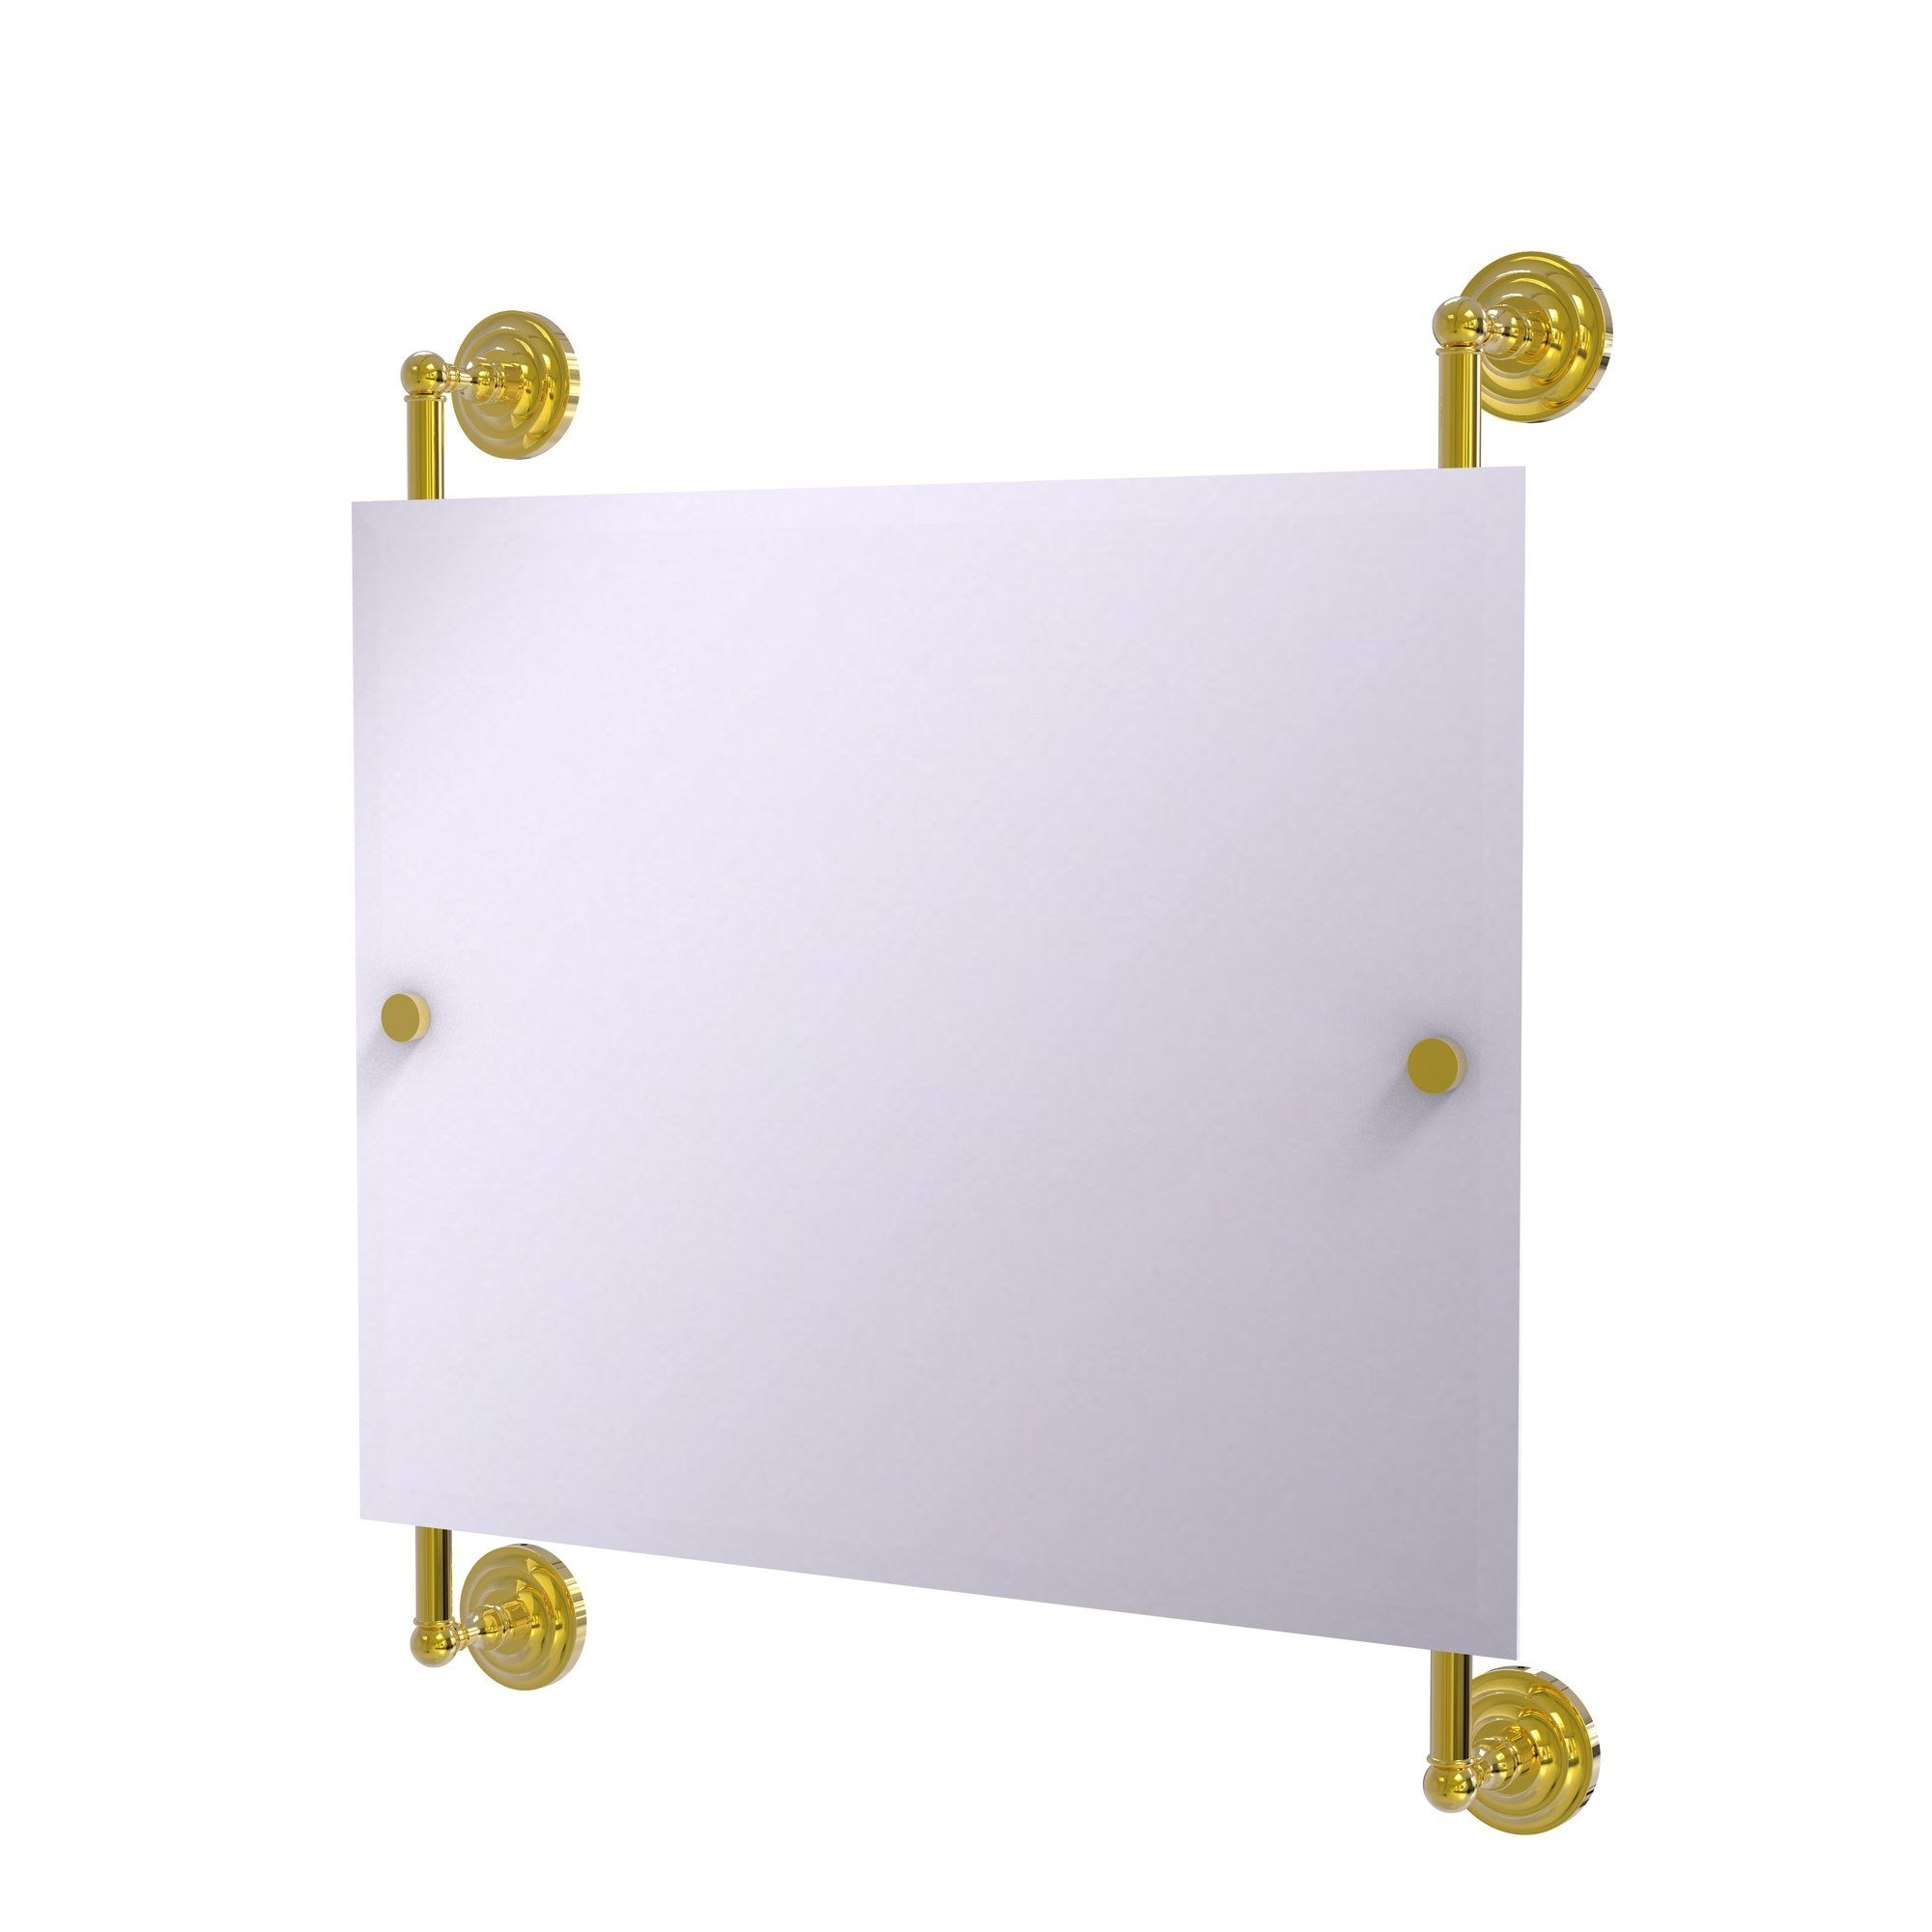 Prestige Que New Landscape Wall Mirror Wall Mirrors Mirror And Throughout Landscape Wall Mirror (View 9 of 15)